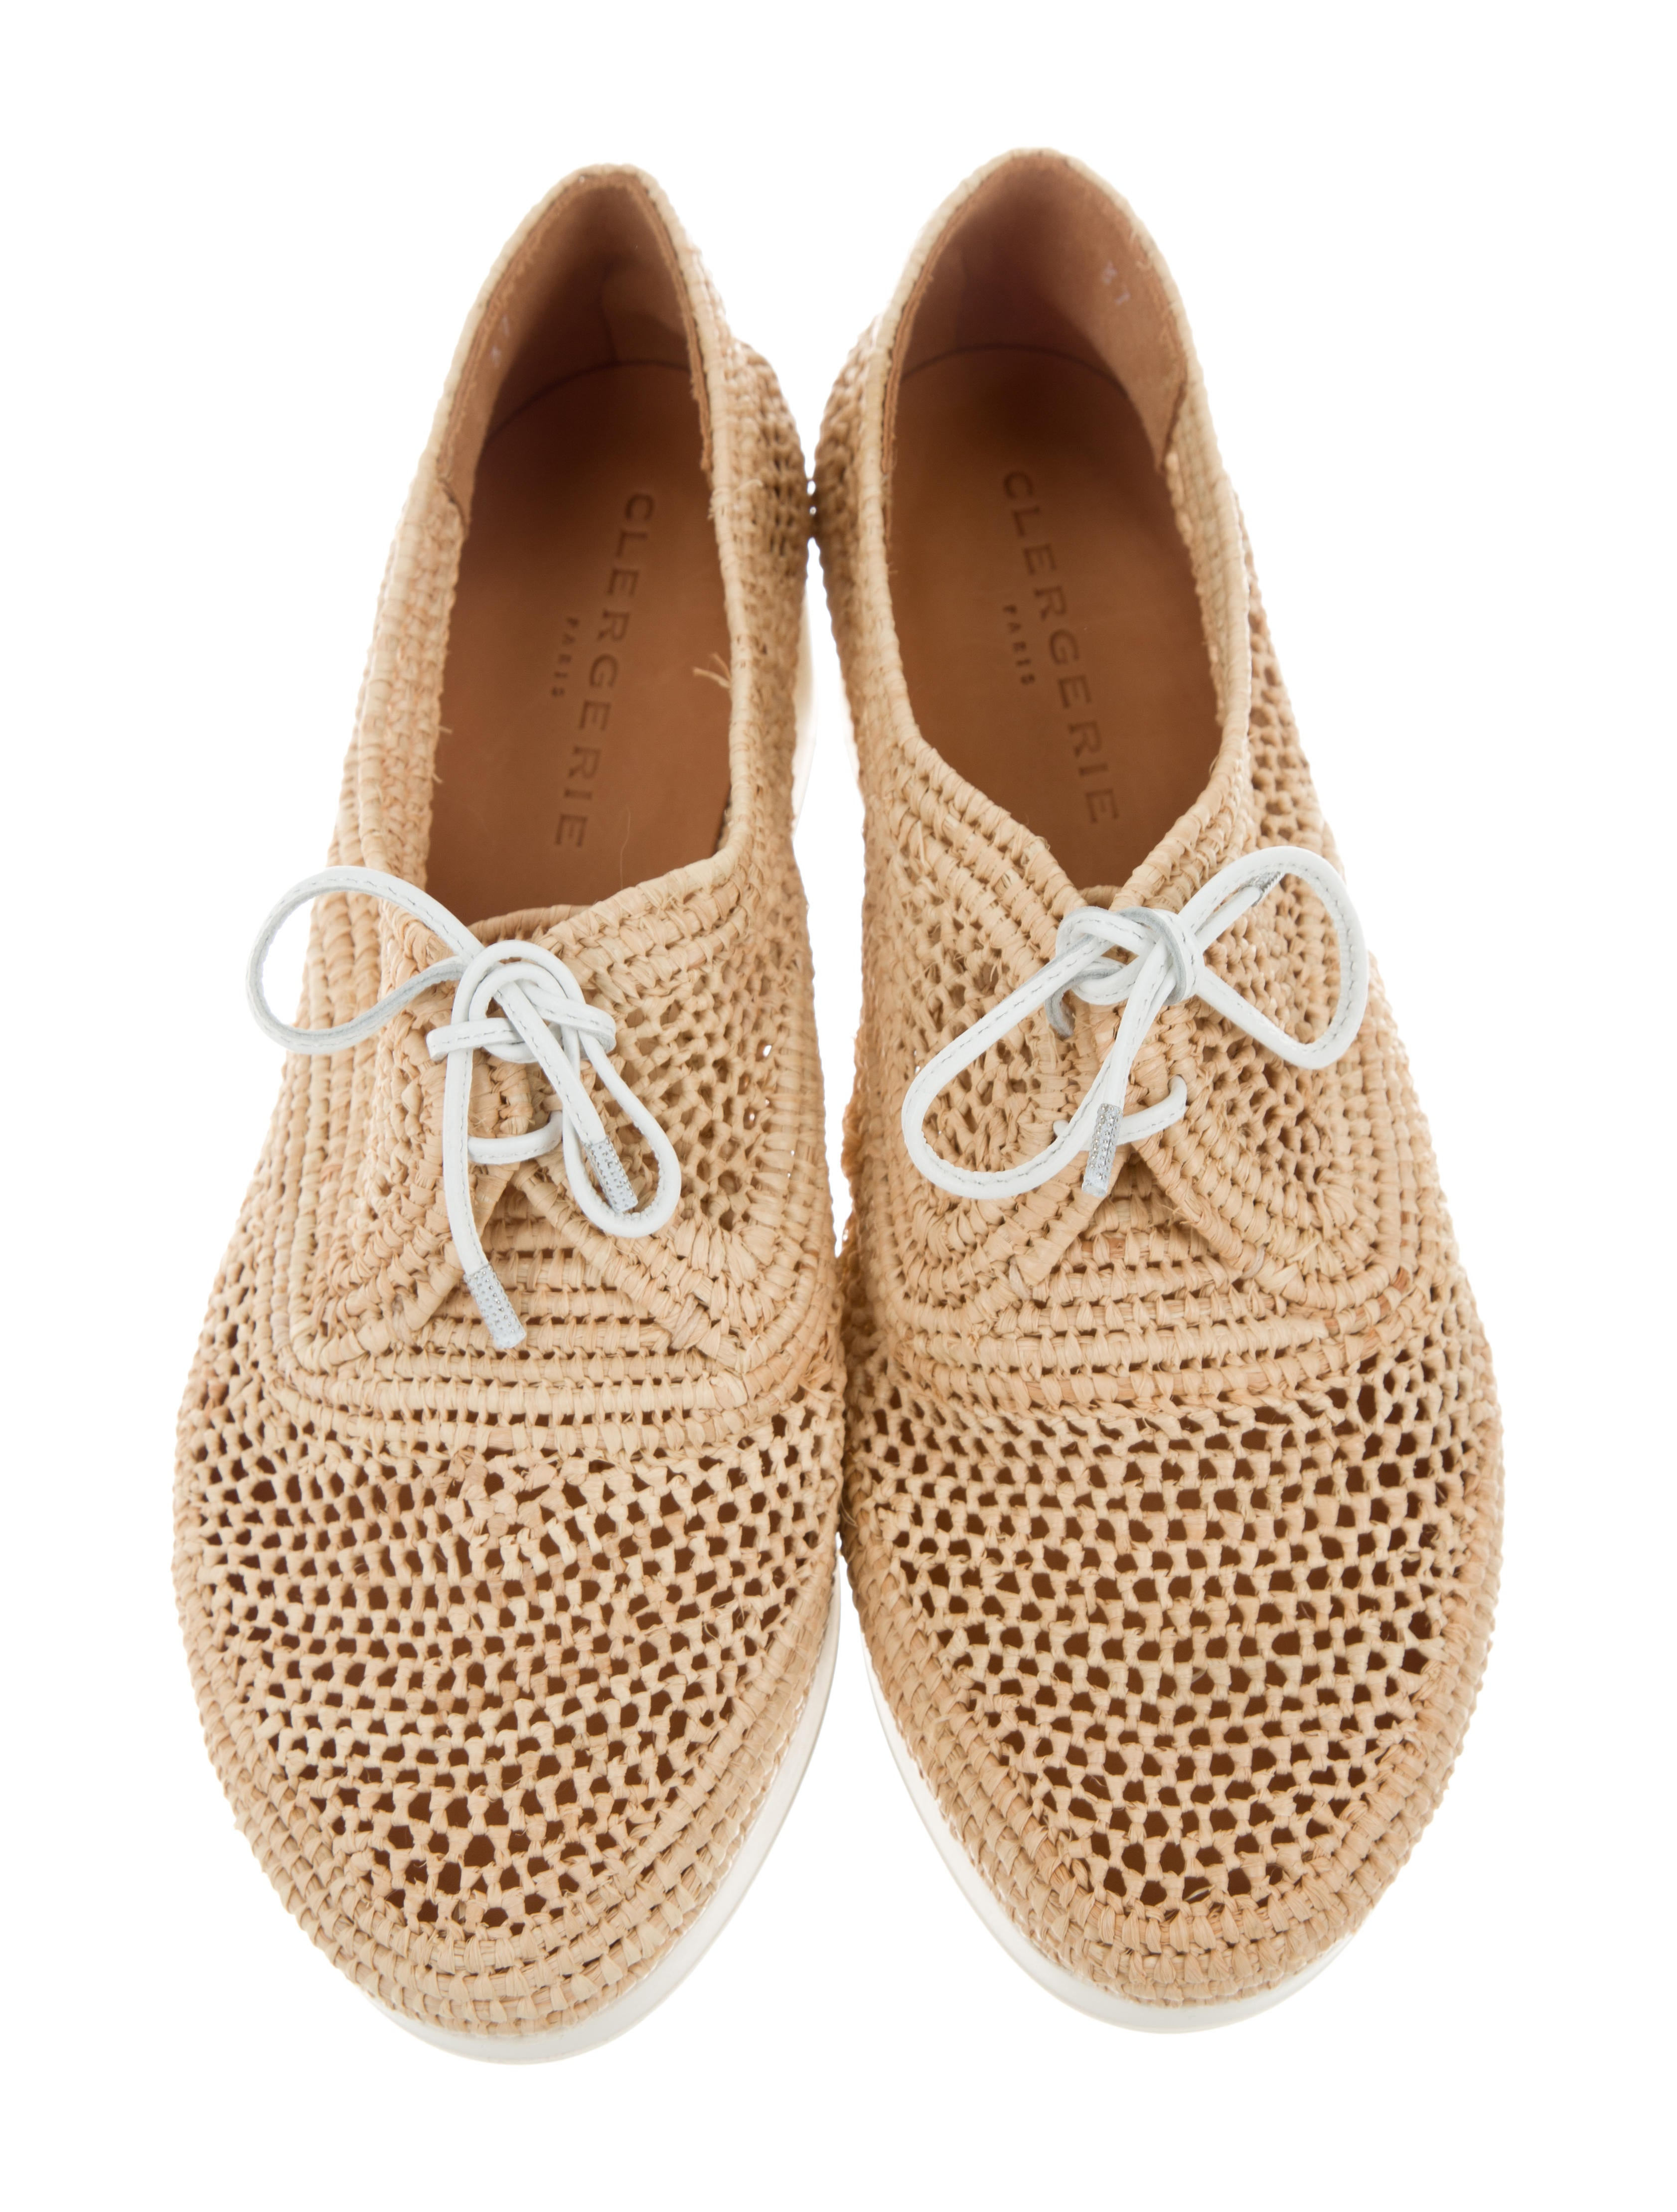 Robert Clergerie Straw Flatform Oxfords outlet ebay original cheap price with paypal cheap price outlet largest supplier v87vzV2